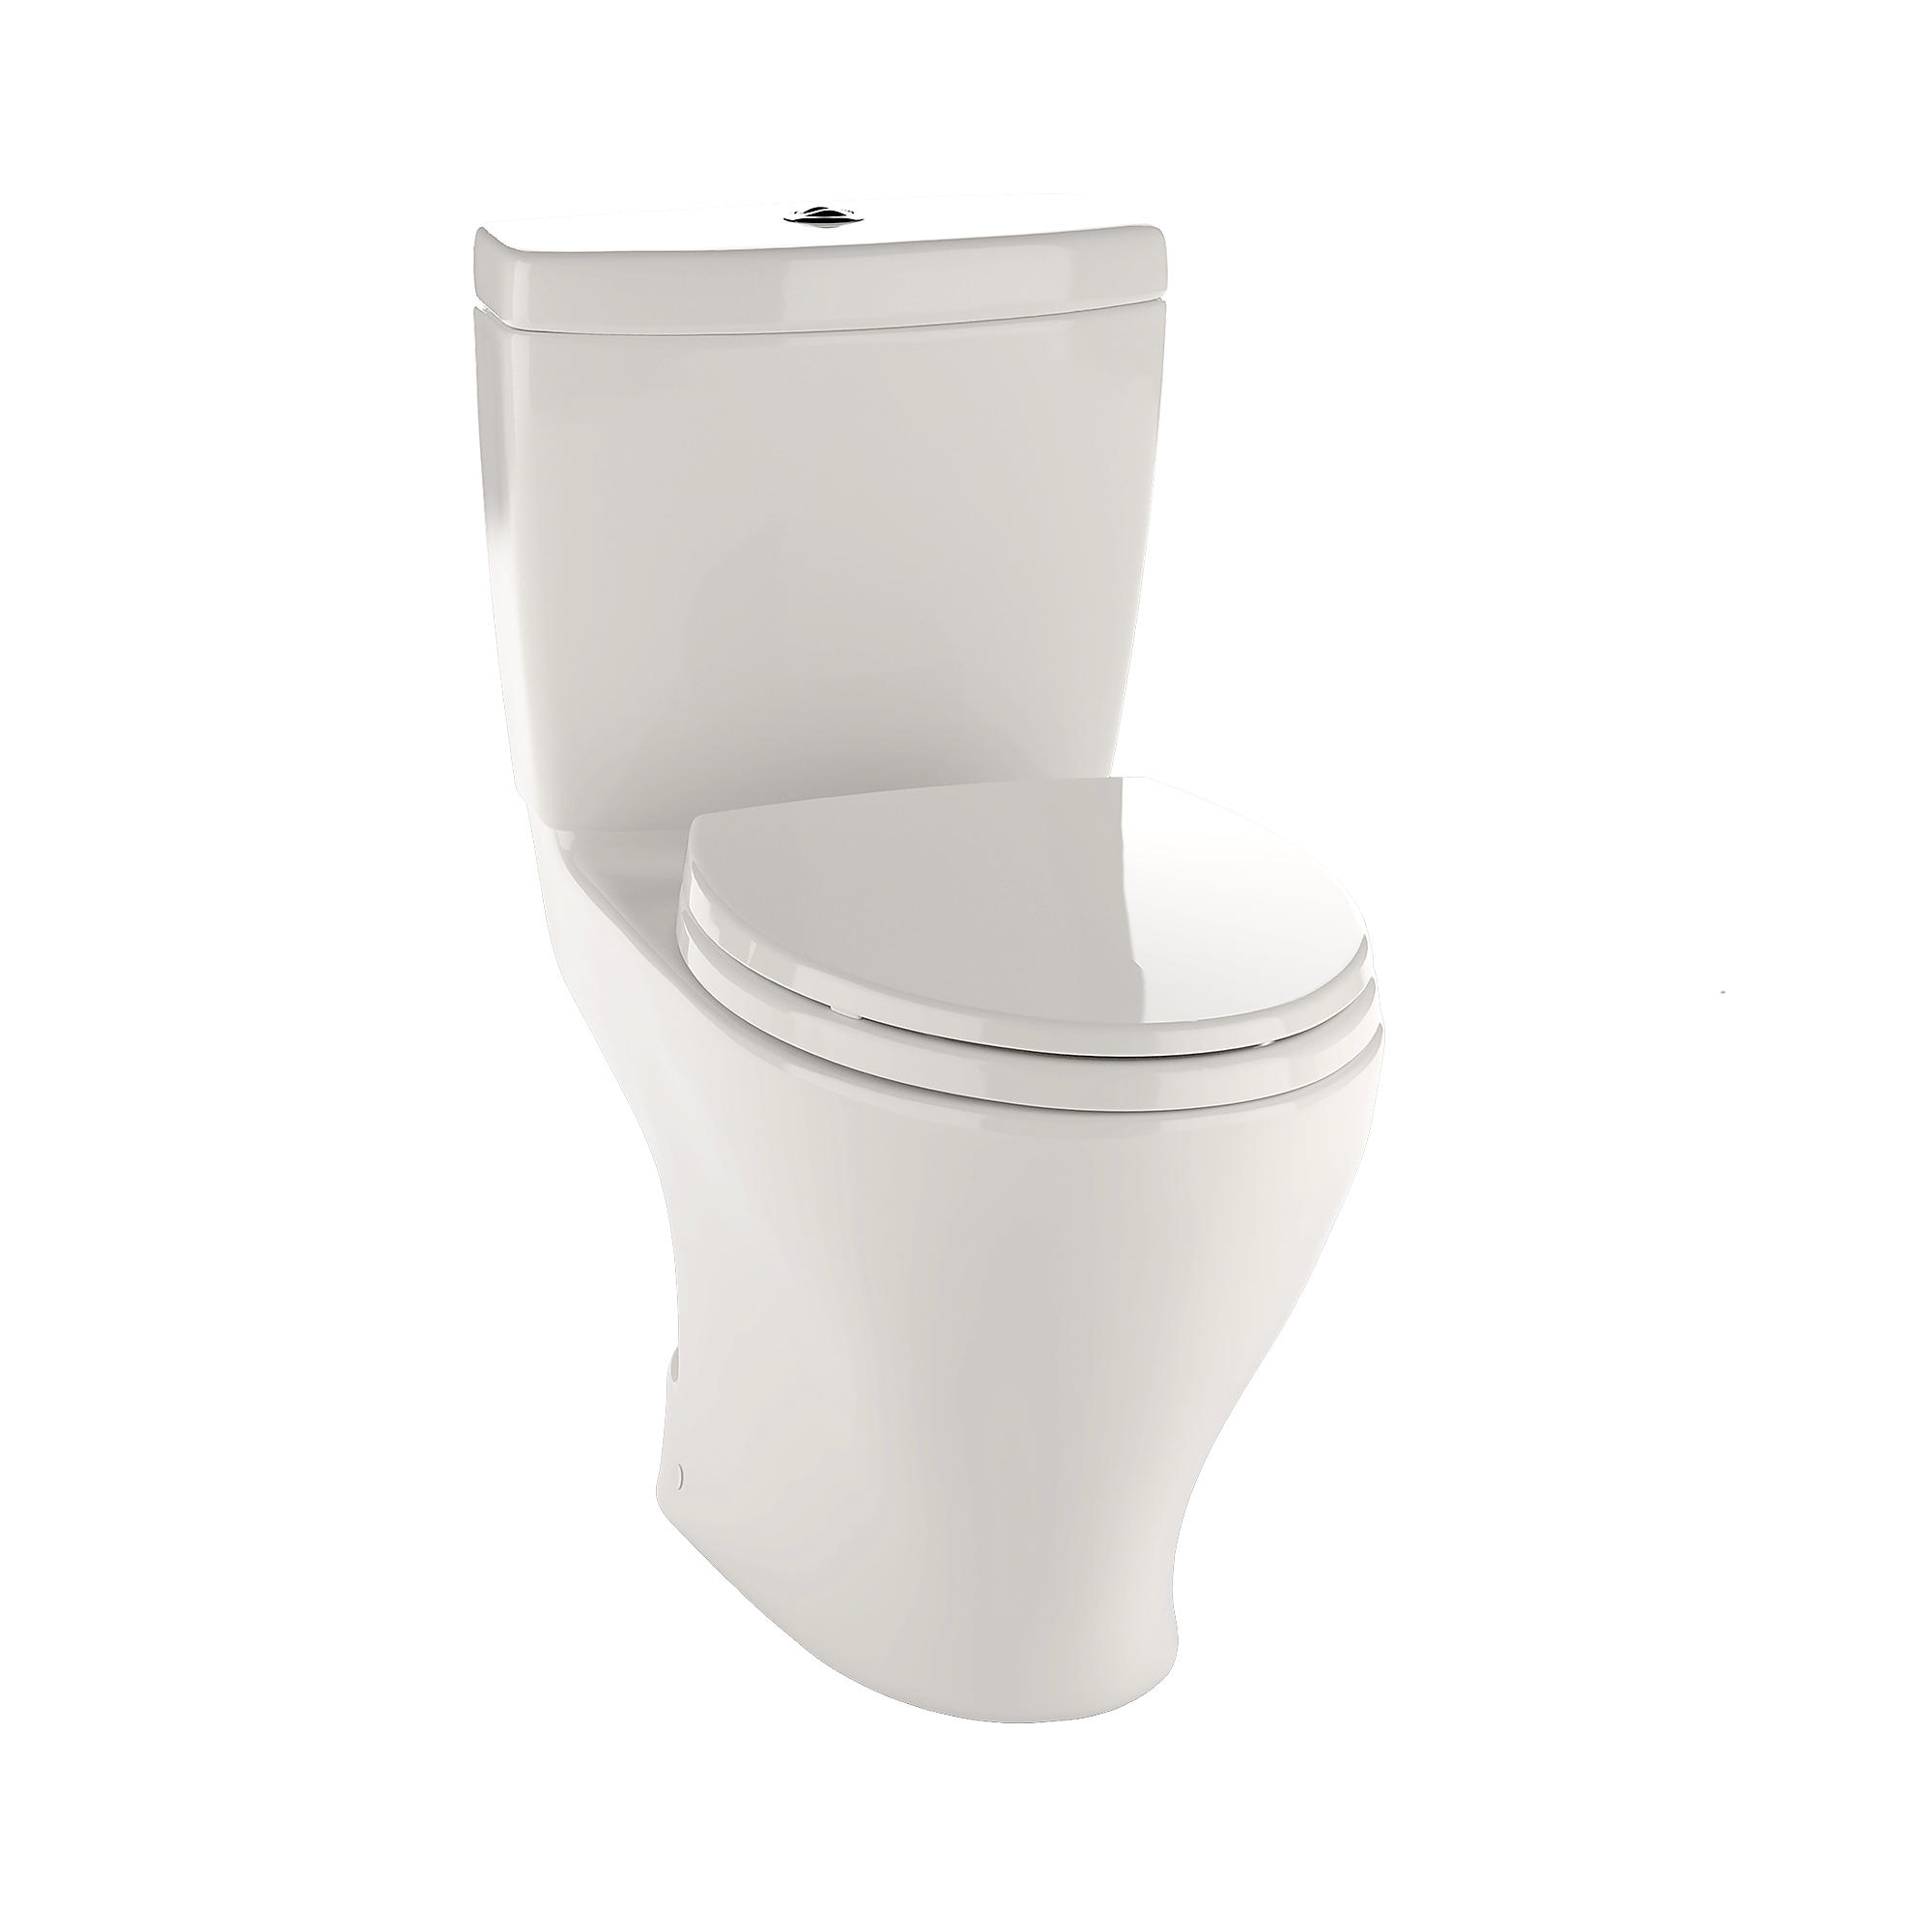 Cst412mf 12 aquia  dual flush two piece toilet  1 6 gpf   0 9 gpf  elongated bowl 0